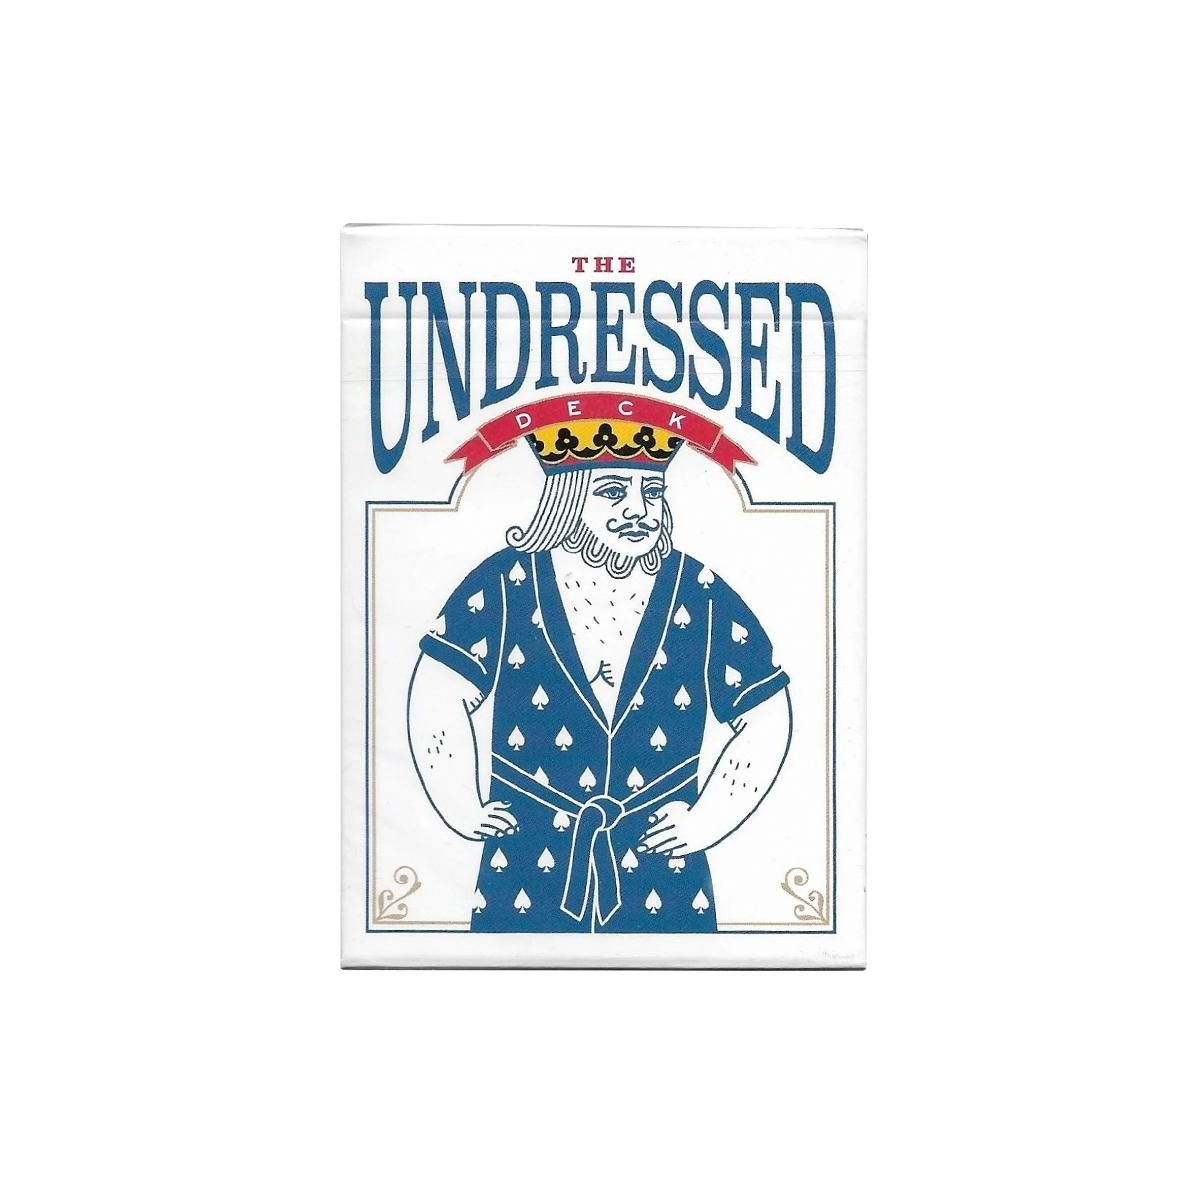 The Undressed deck by Edi Rudo